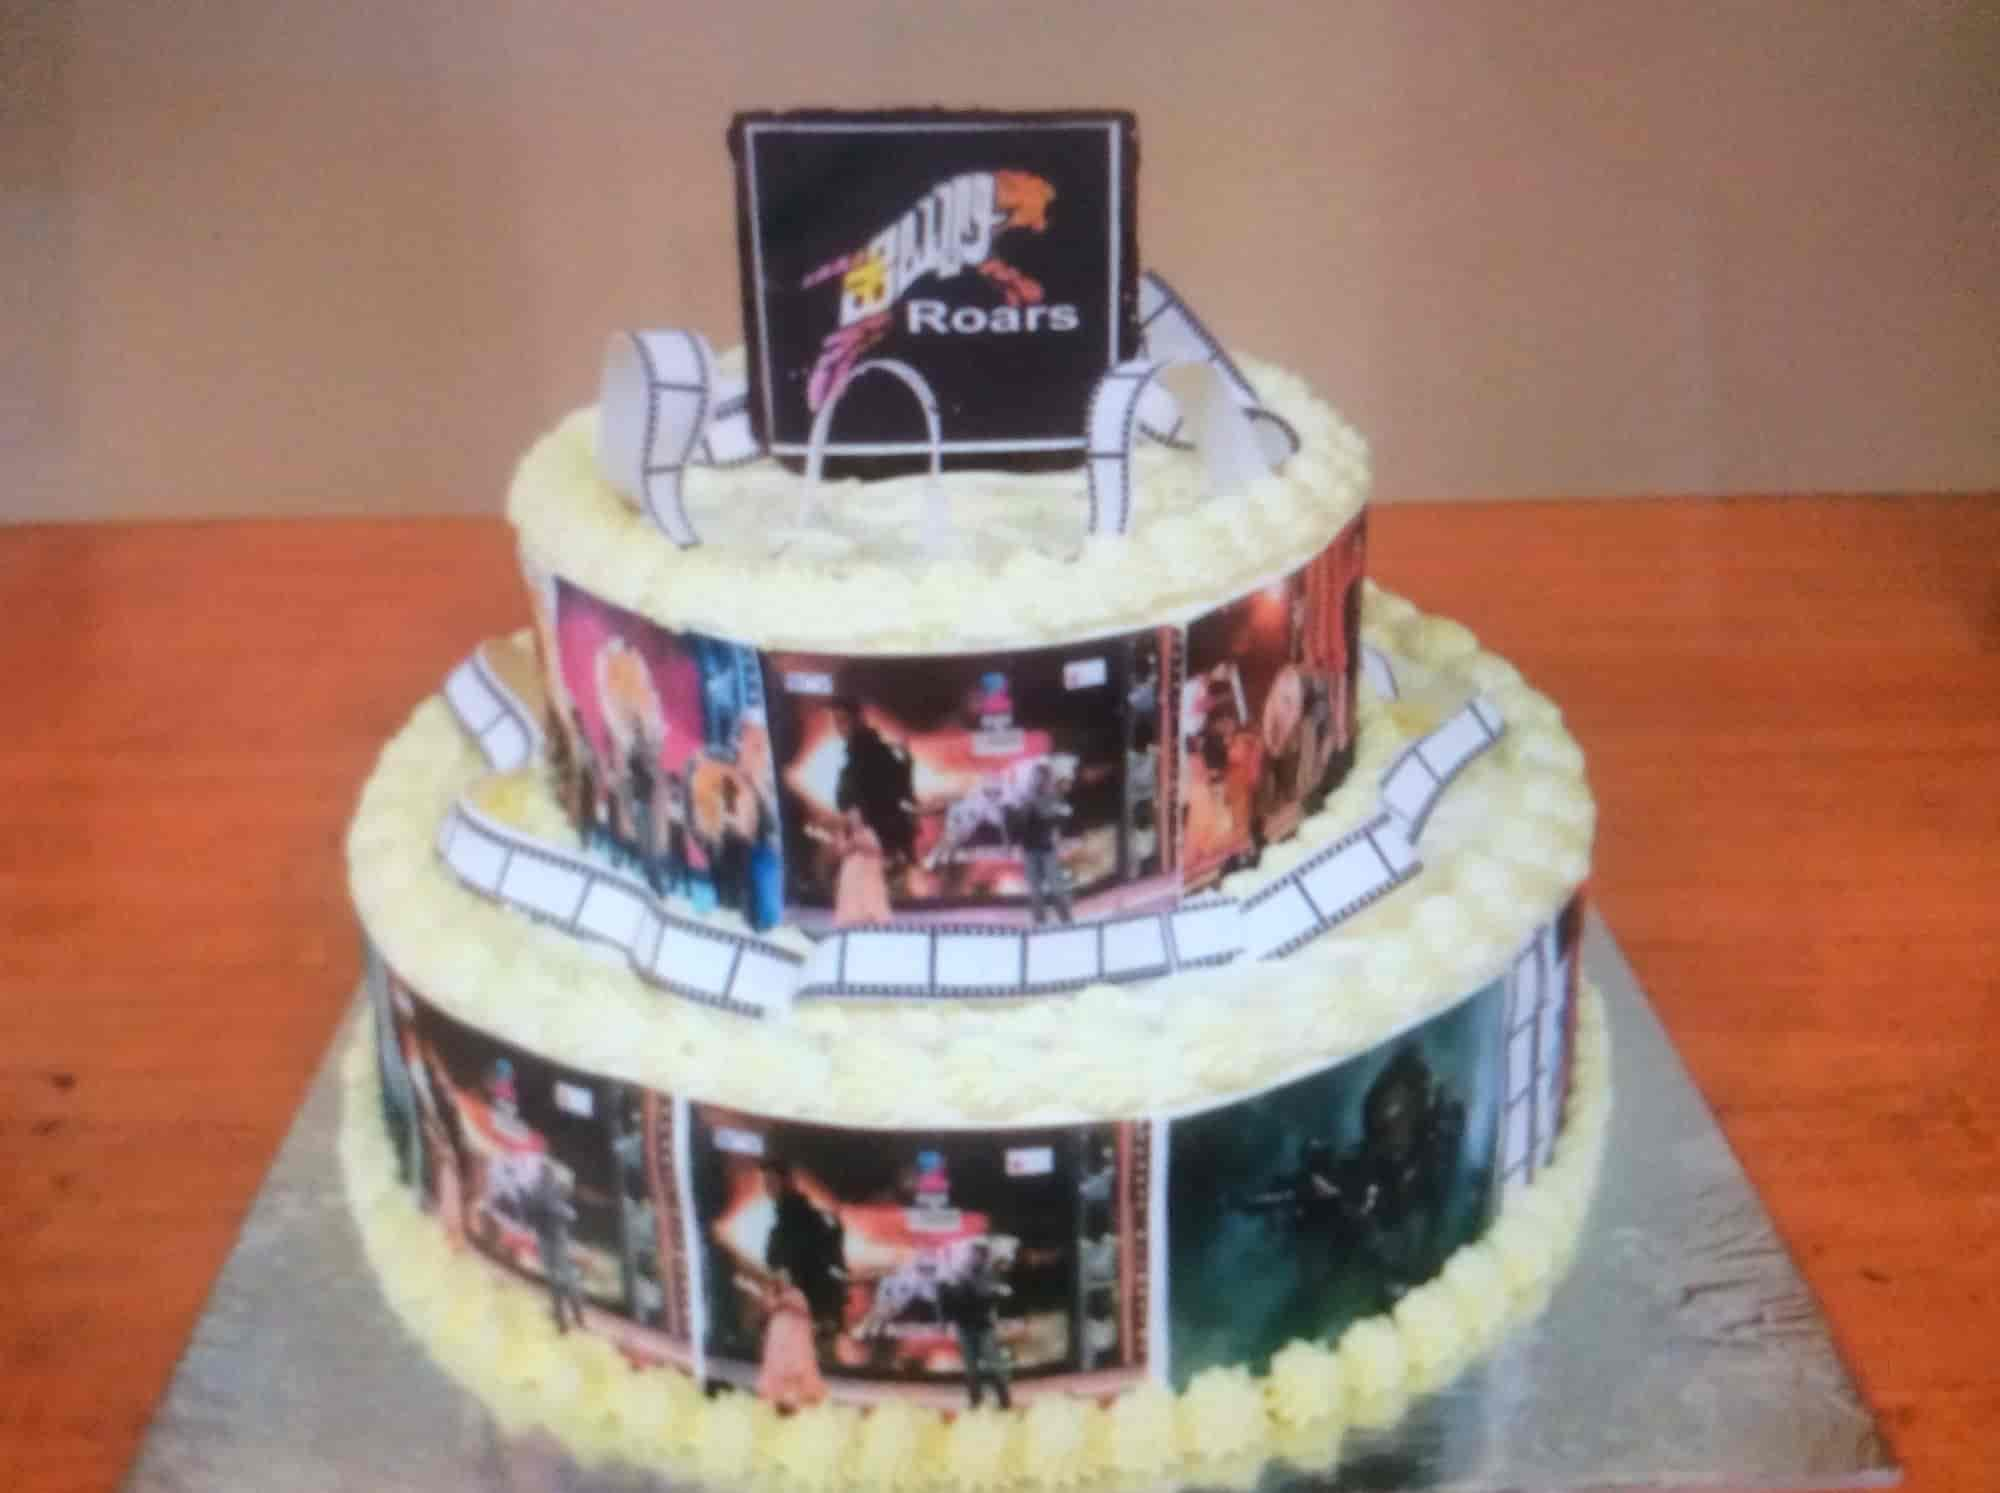 Jayadeva Cakes BTM Layout 1st Stage Cake Delivery Services in